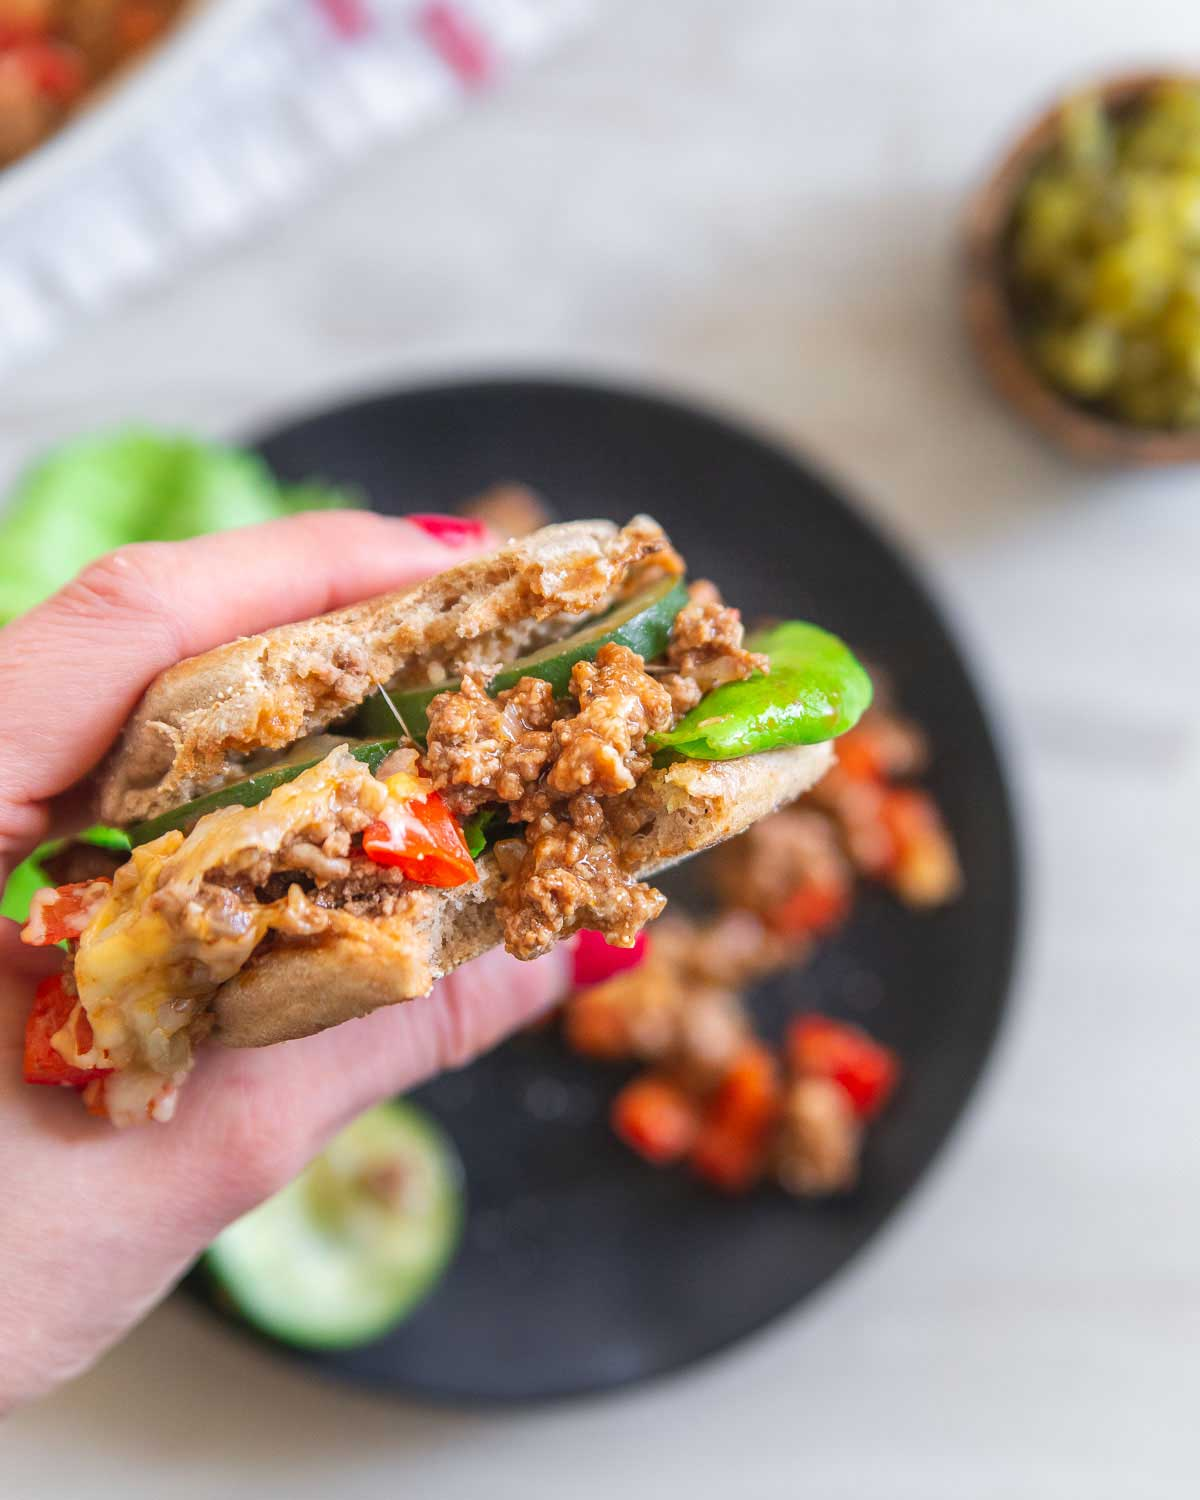 Lean ground beef, low-fat cheese and low sugar condiments make these healthier sloppy joes a great alternative to the traditional dinner.